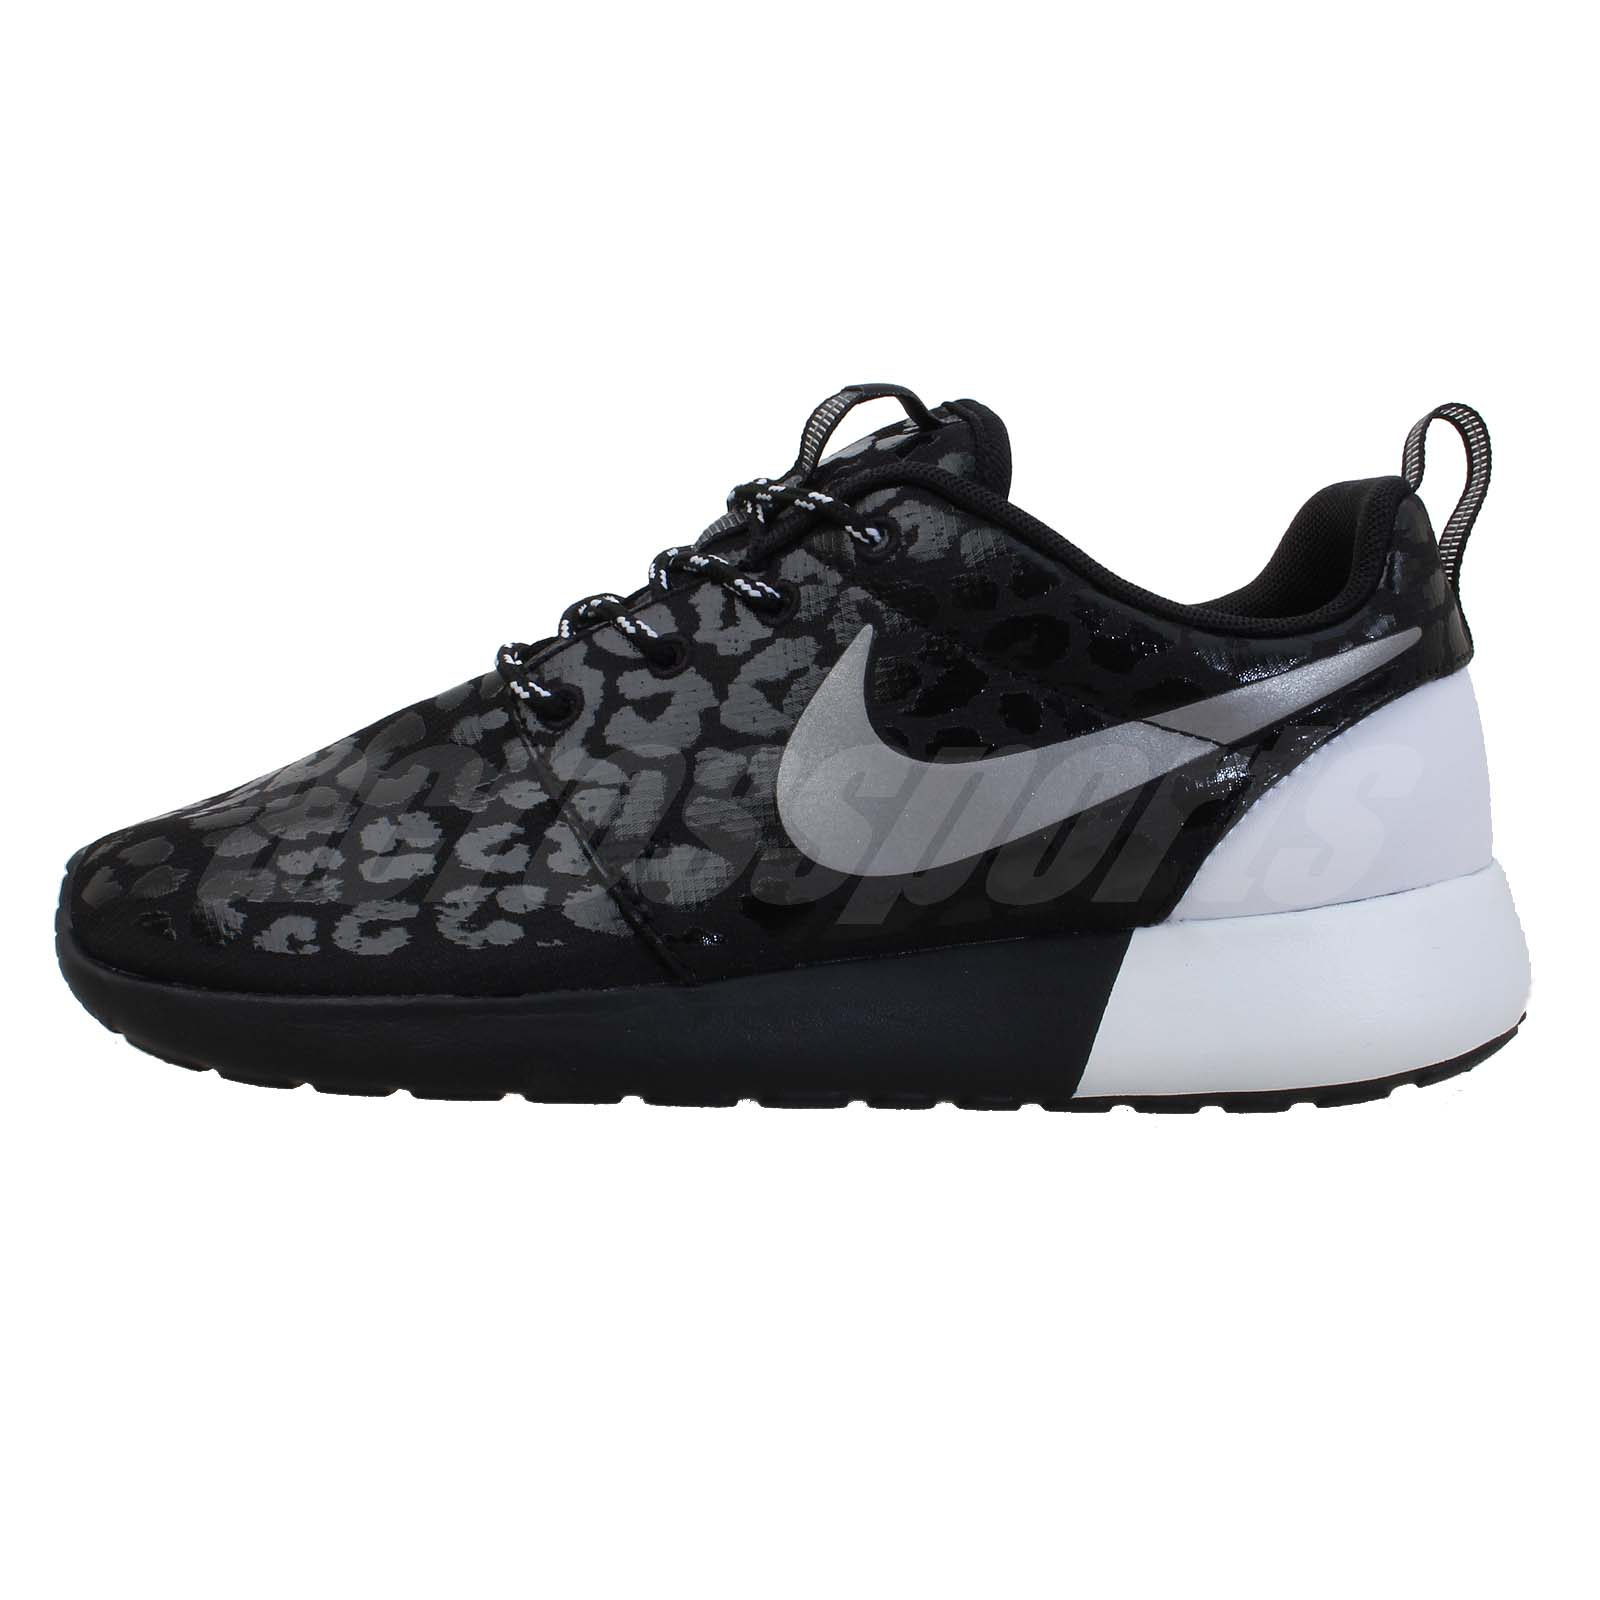 Nike Silver Leopard Print Shoes